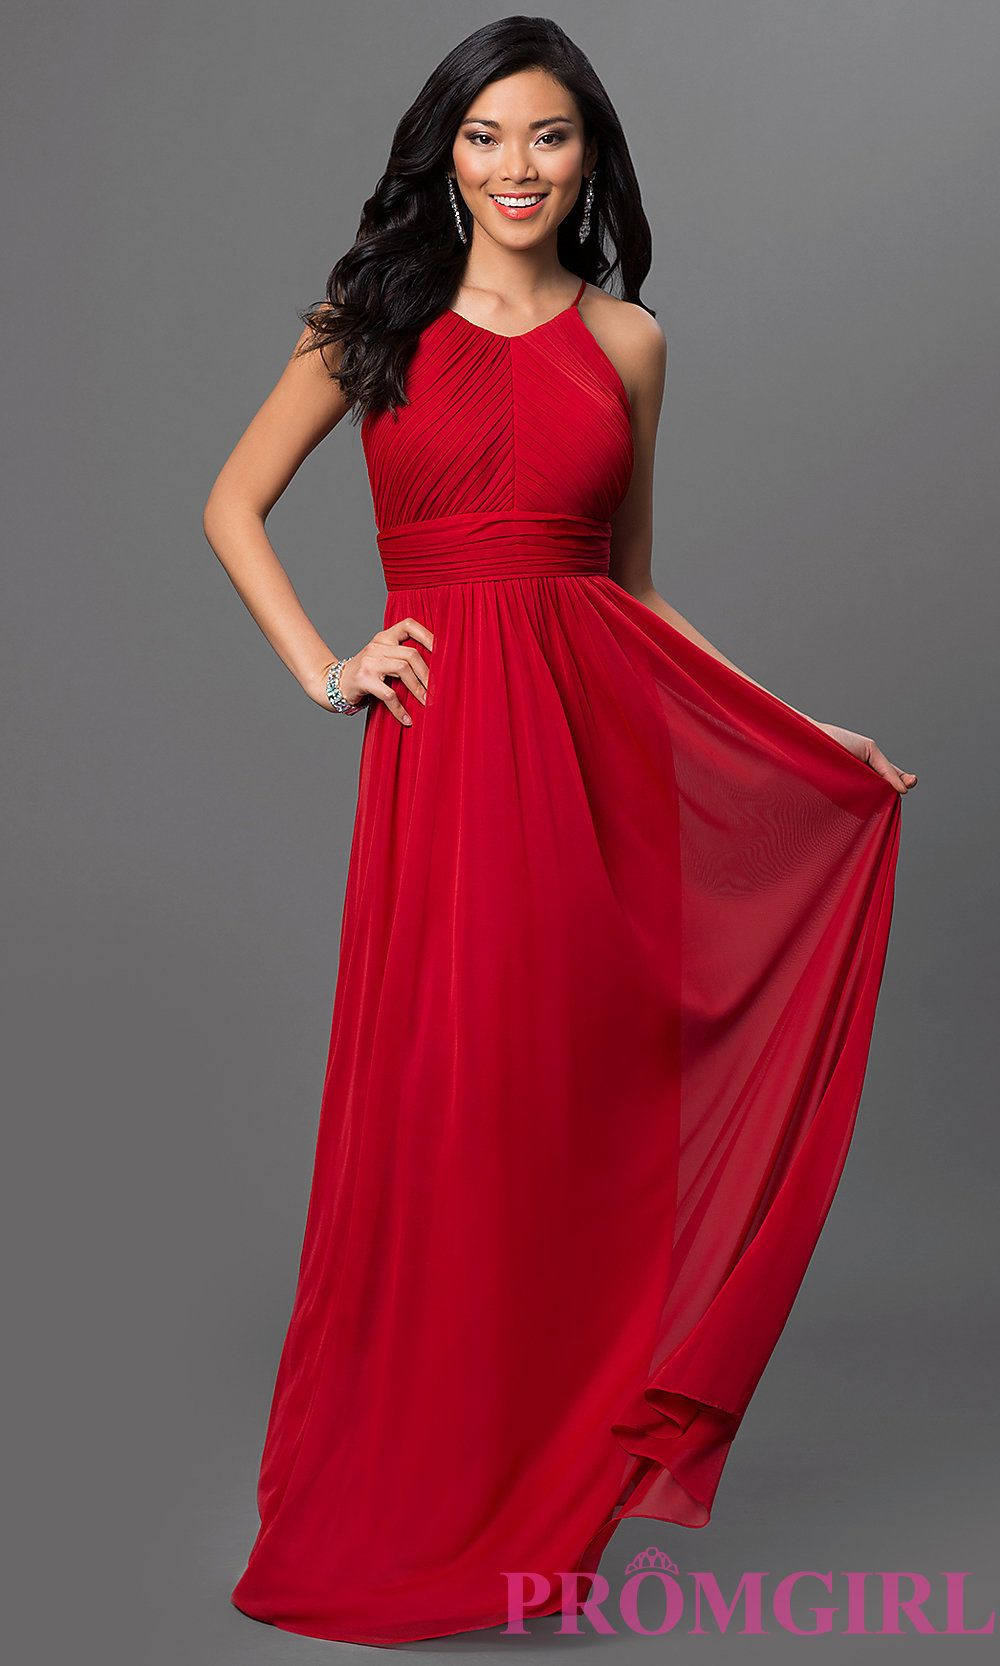 Swatchattribute dress pinterest bodice prom and formal